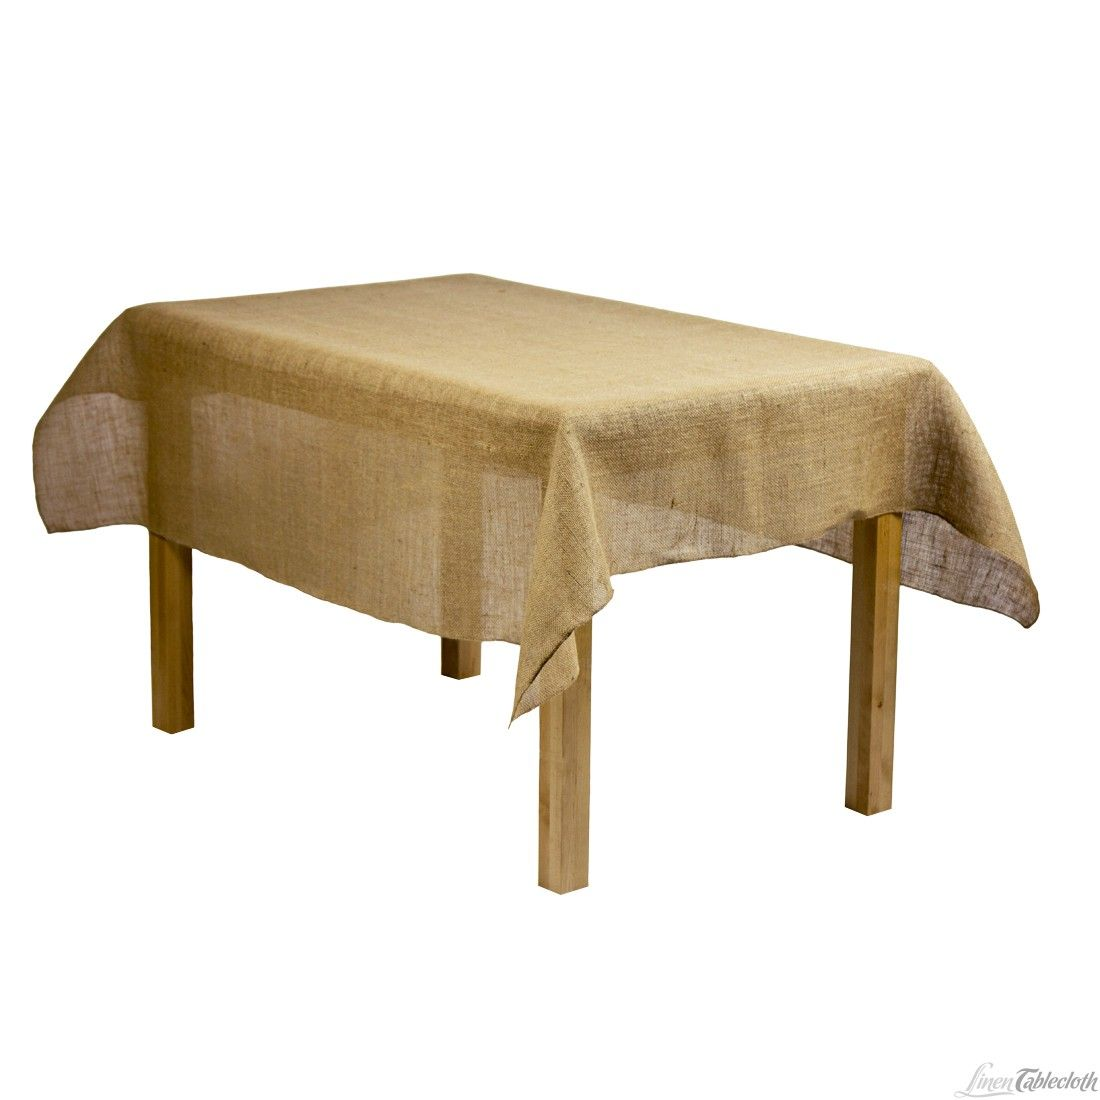 Tablecloths For Dining Room Tables 1000 Images About Linens Burlap Amp Lace On Pinterest Burlap